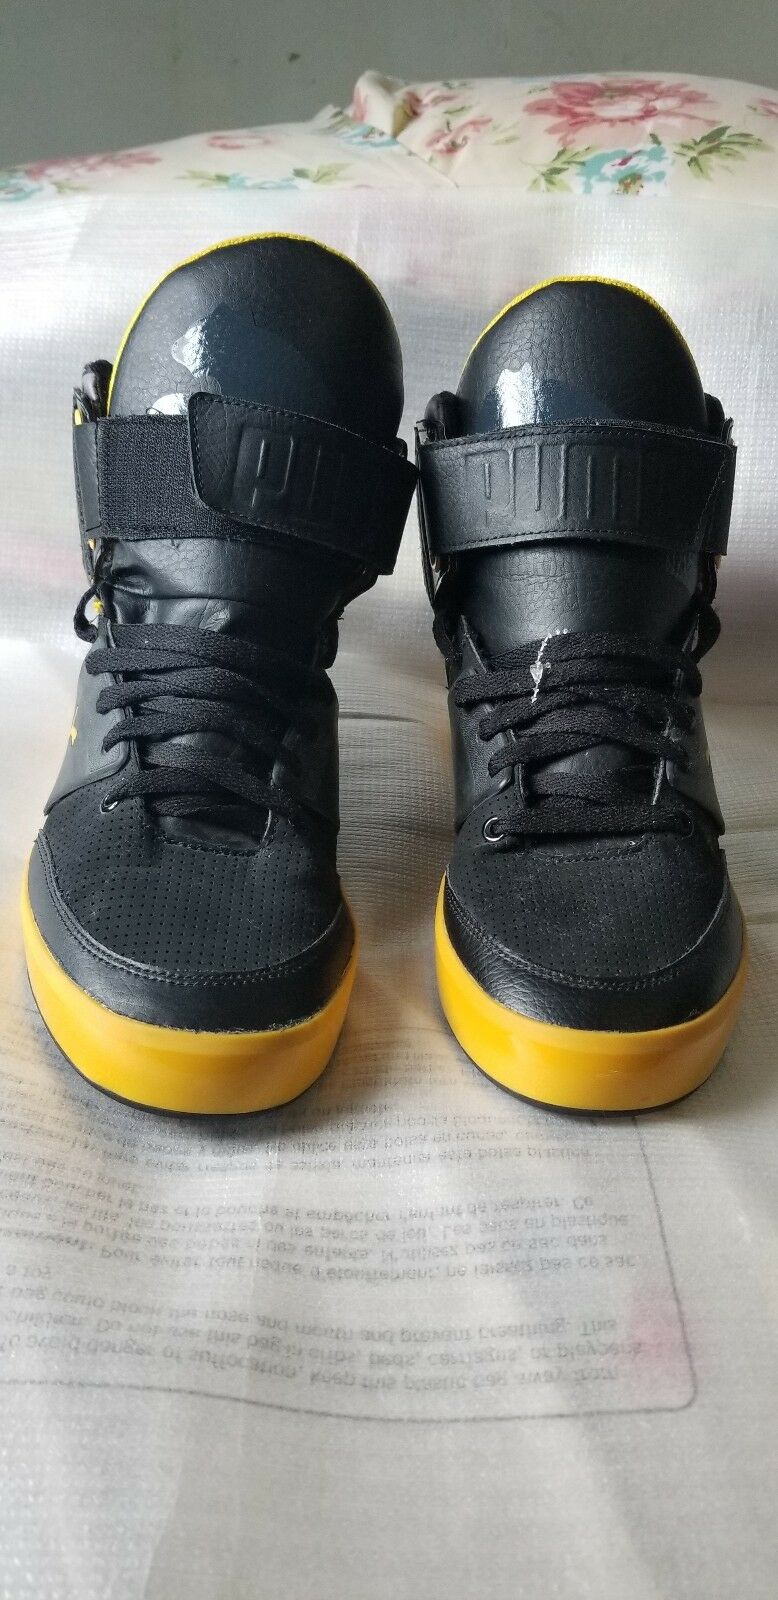 Puma shoes men half boots black and yellow size 9 us.